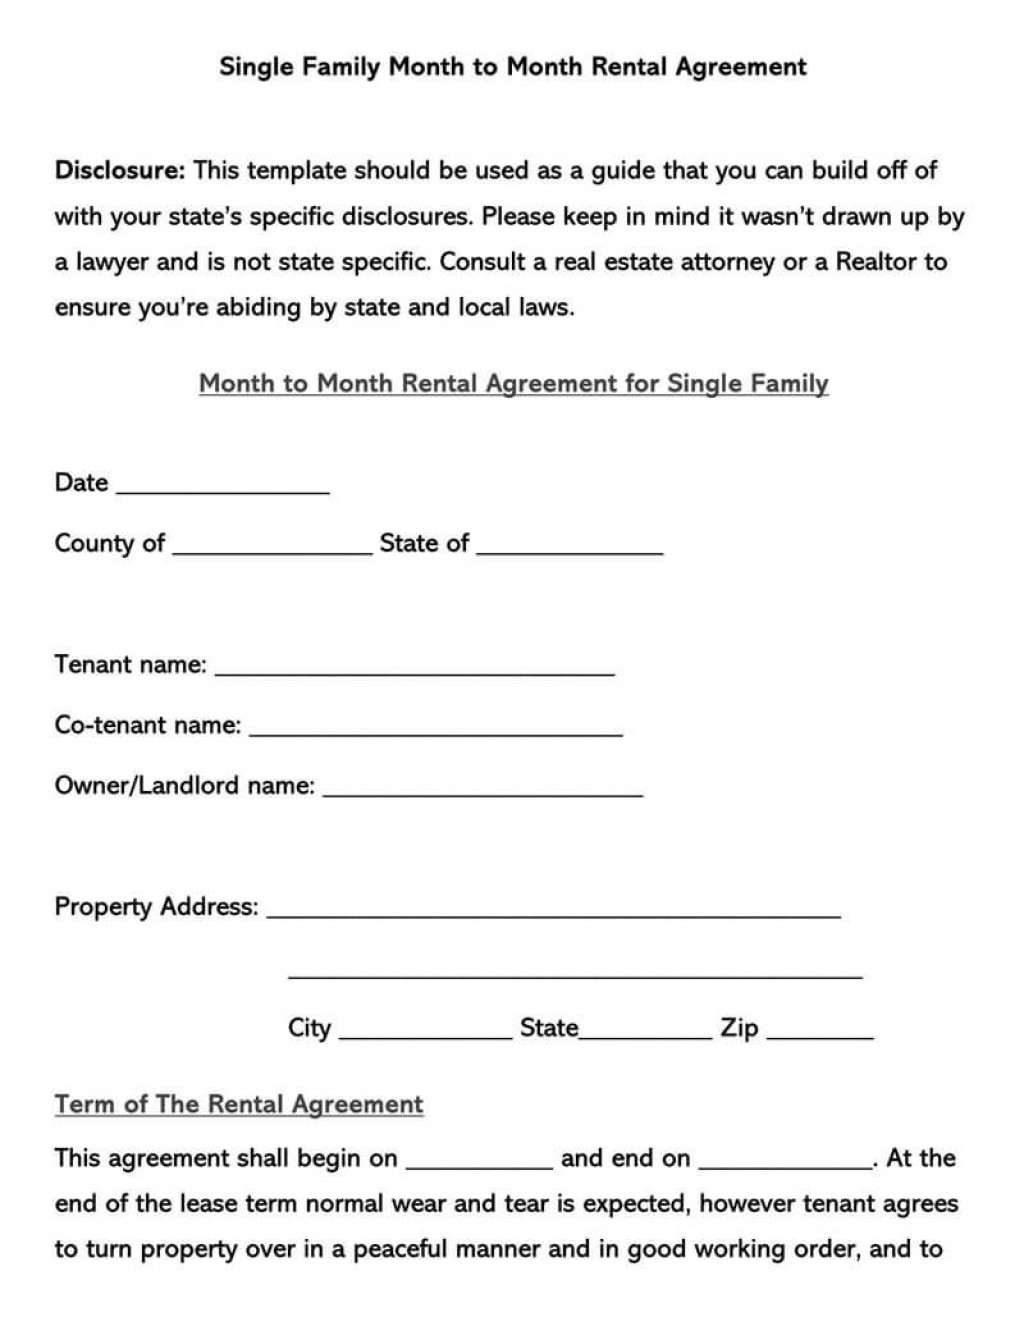 009 Marvelou Renting Contract Template Free Image  Flat Rental SimpleLarge